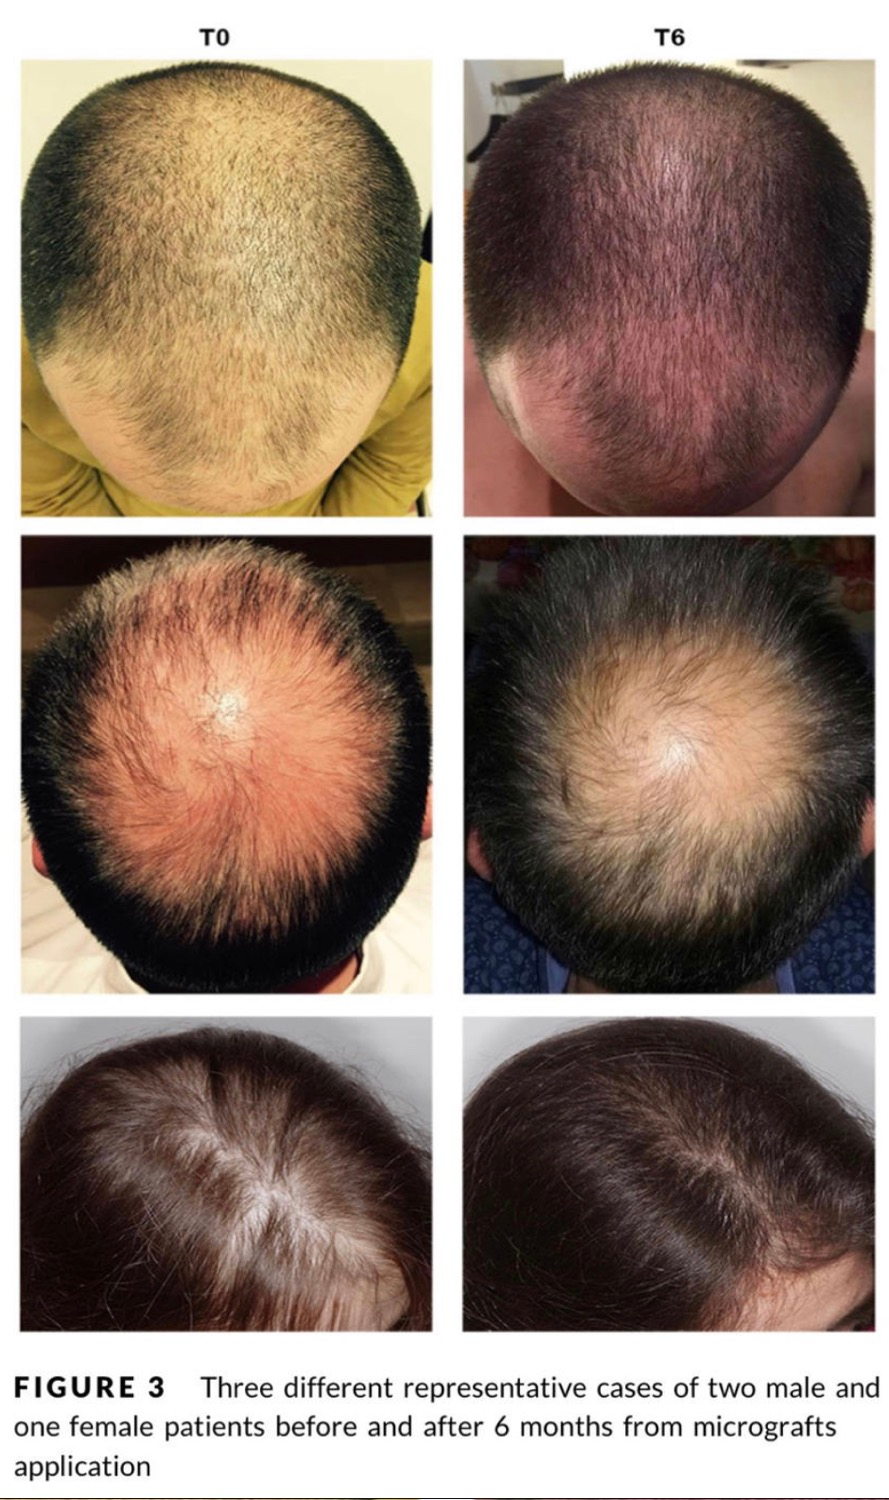 New Advances in Effective Hair Loss Treatment - Progenitor‐cell‐enriched micrografts